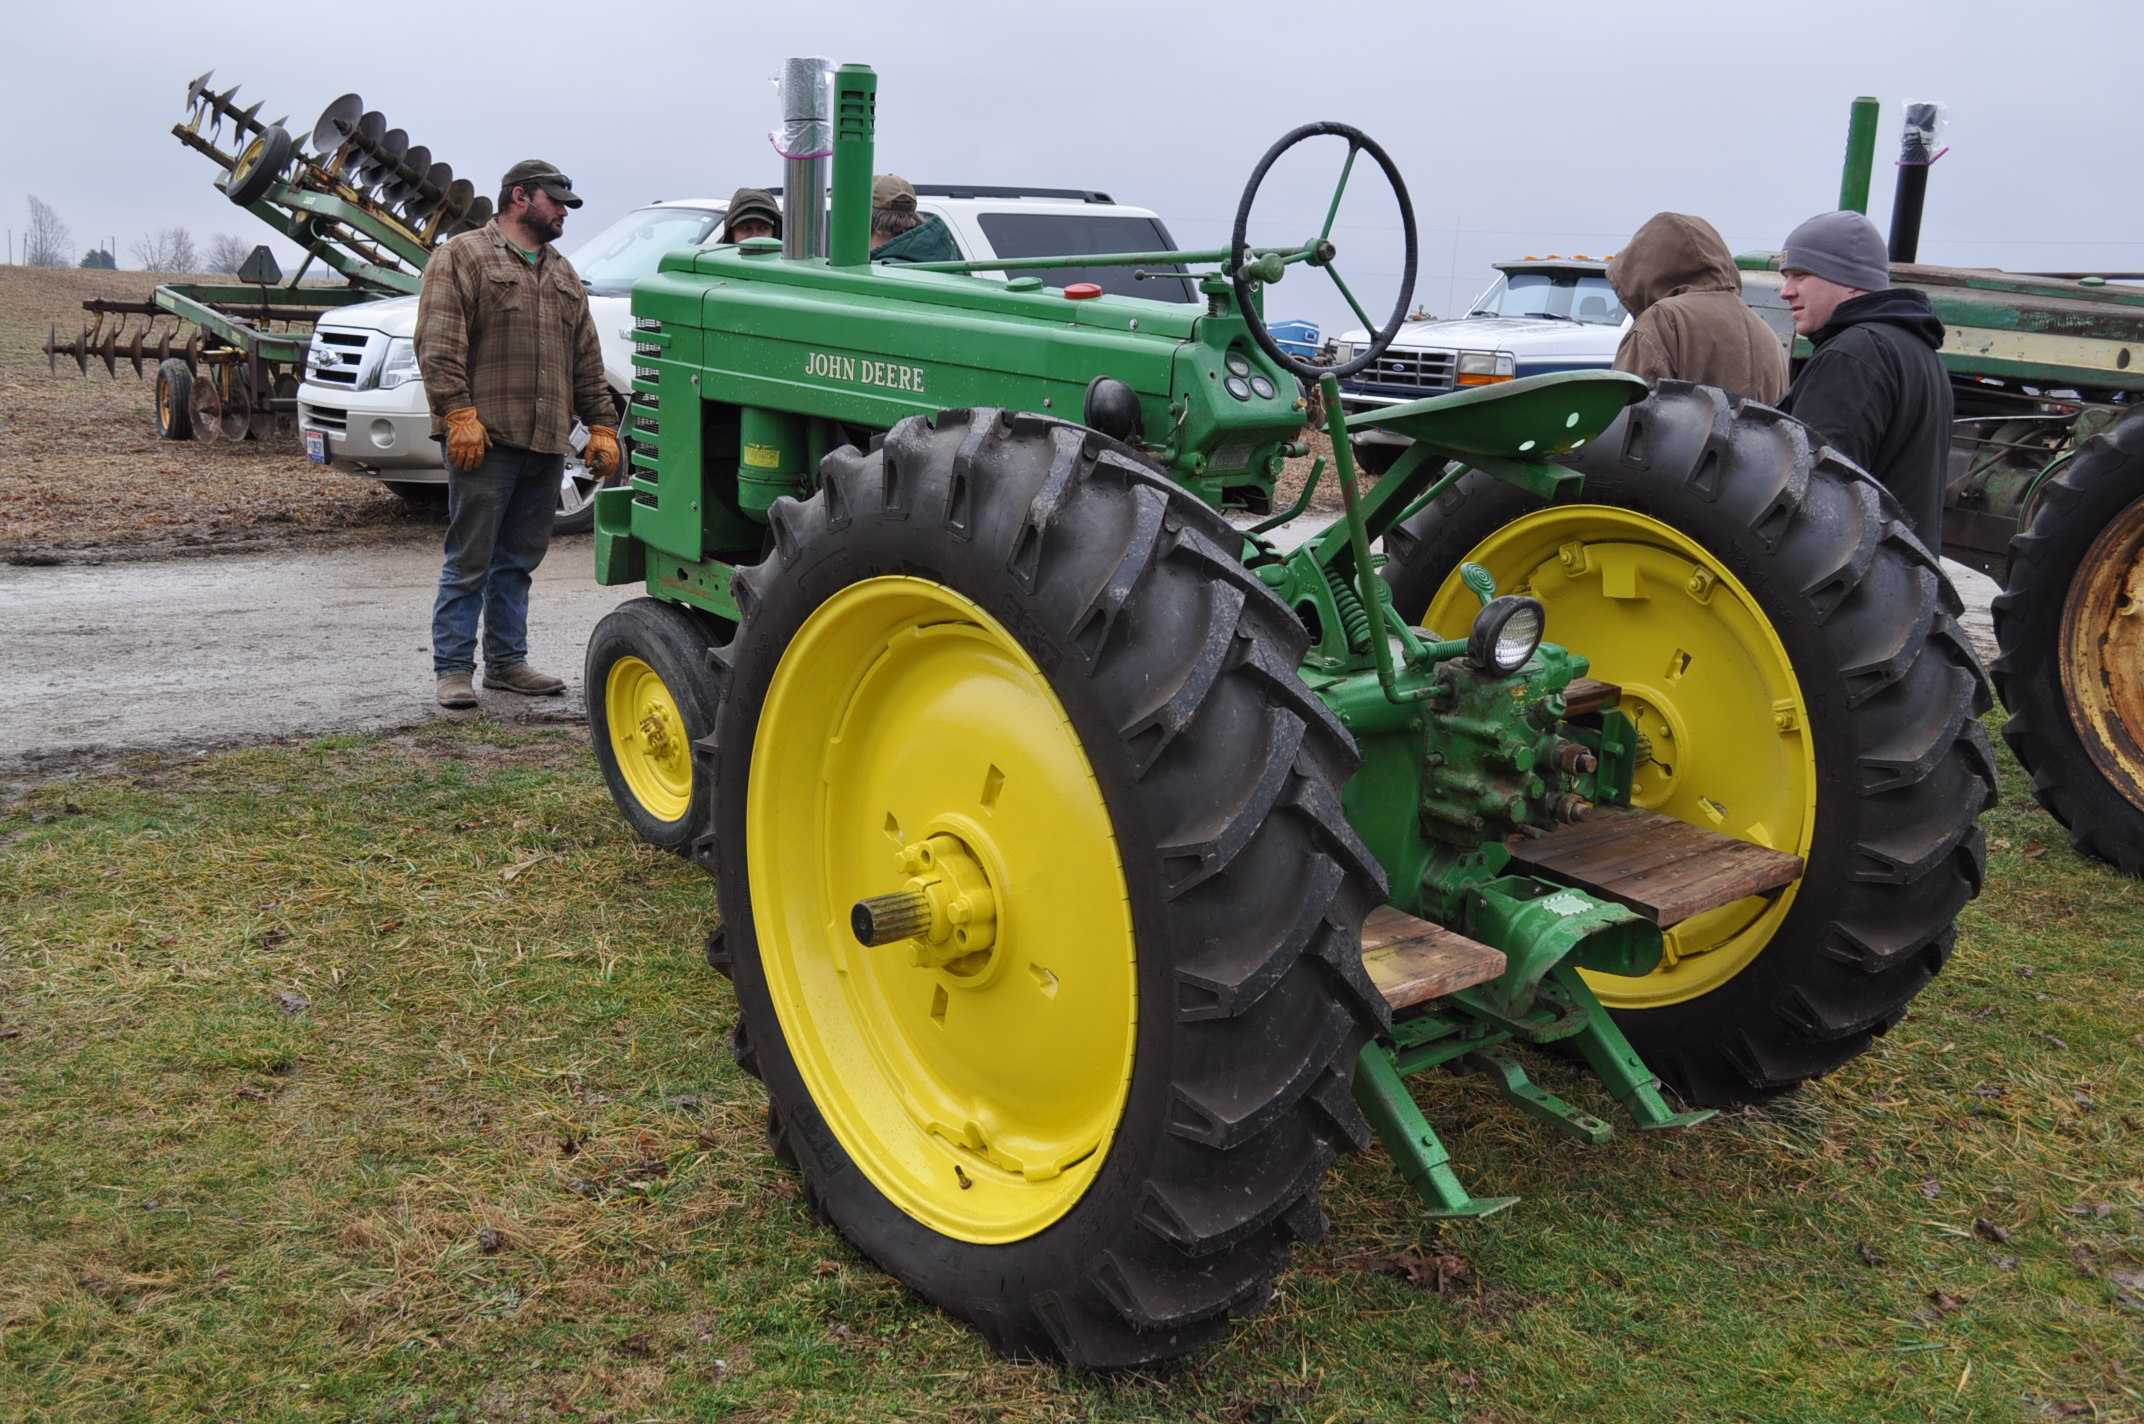 1942 John Deere Styled A, New 12.4-38 rear tires, narrow front, 540 pto - Image 2 of 15